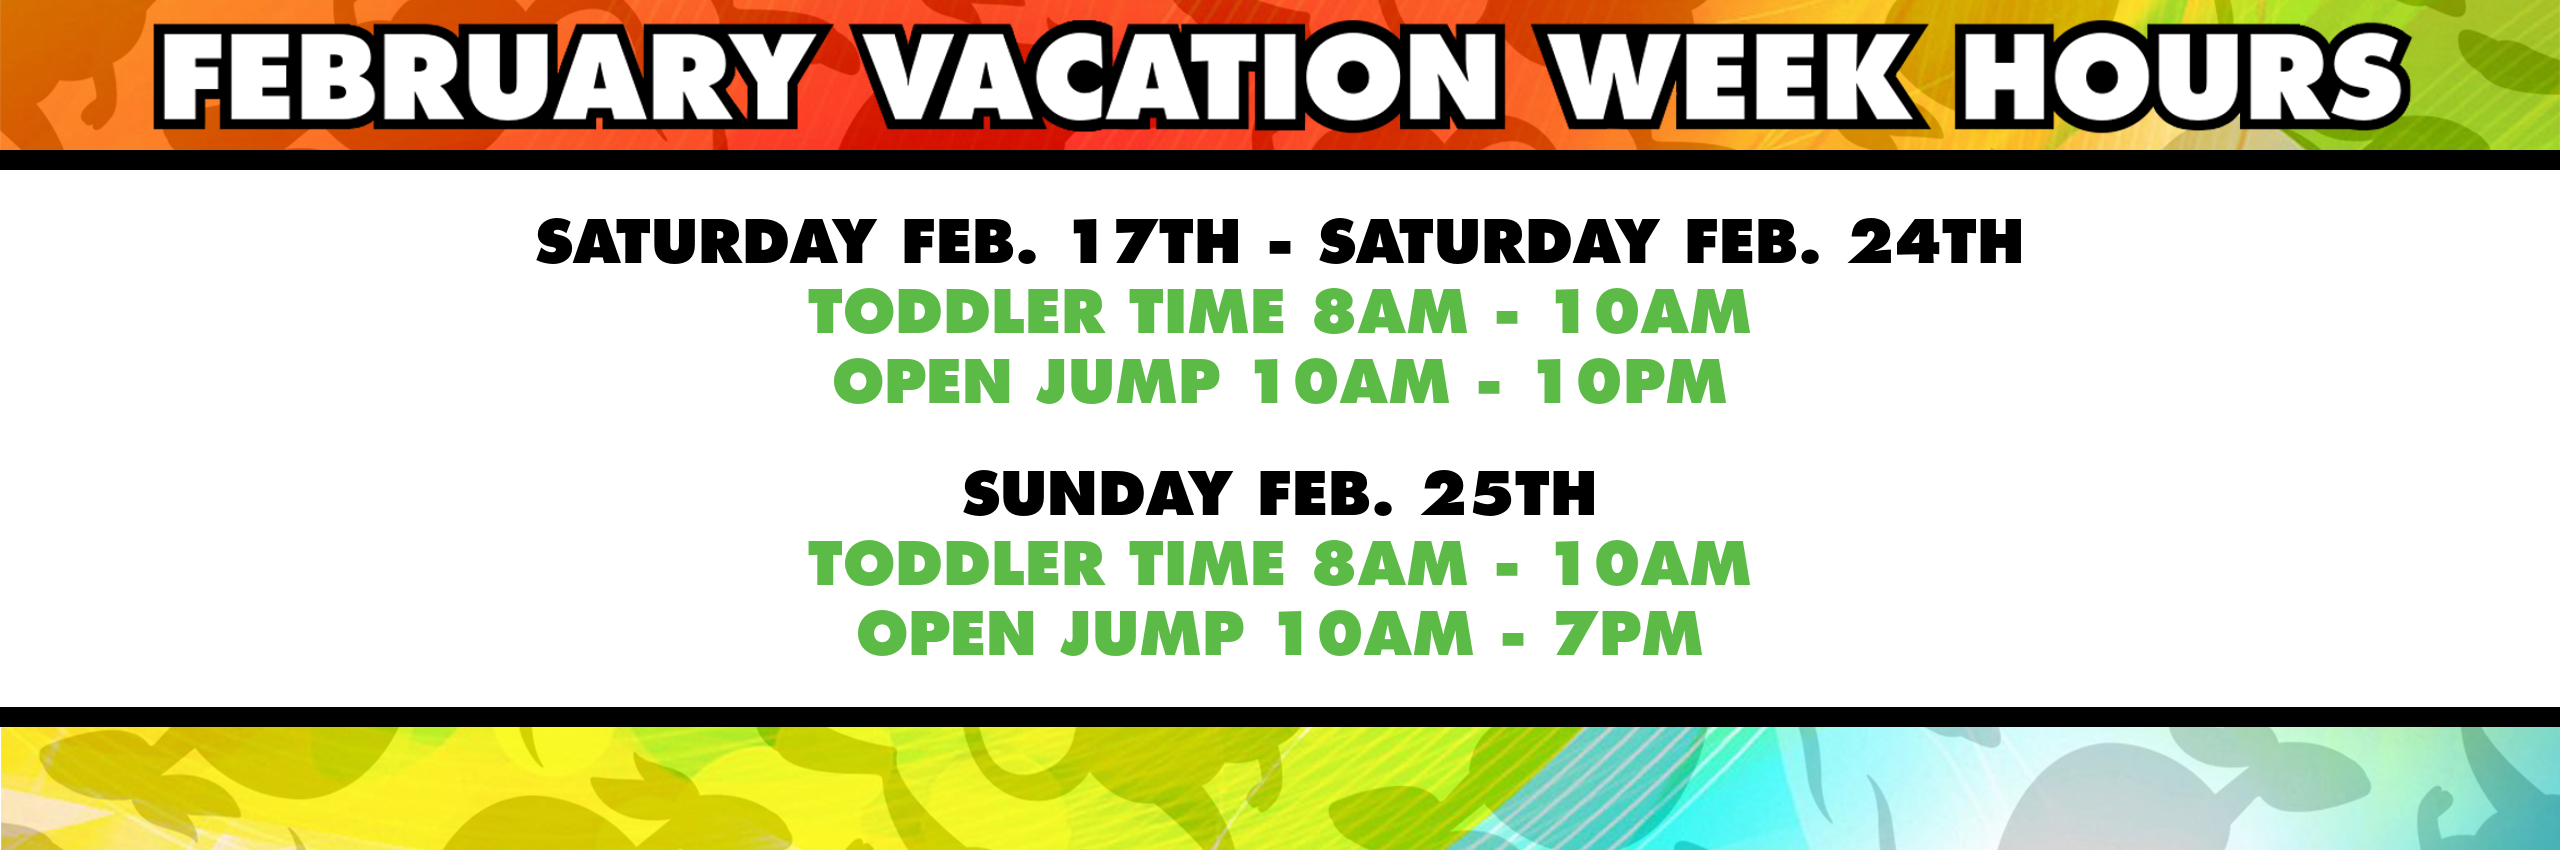 Feb. Vacation 2018 Hours